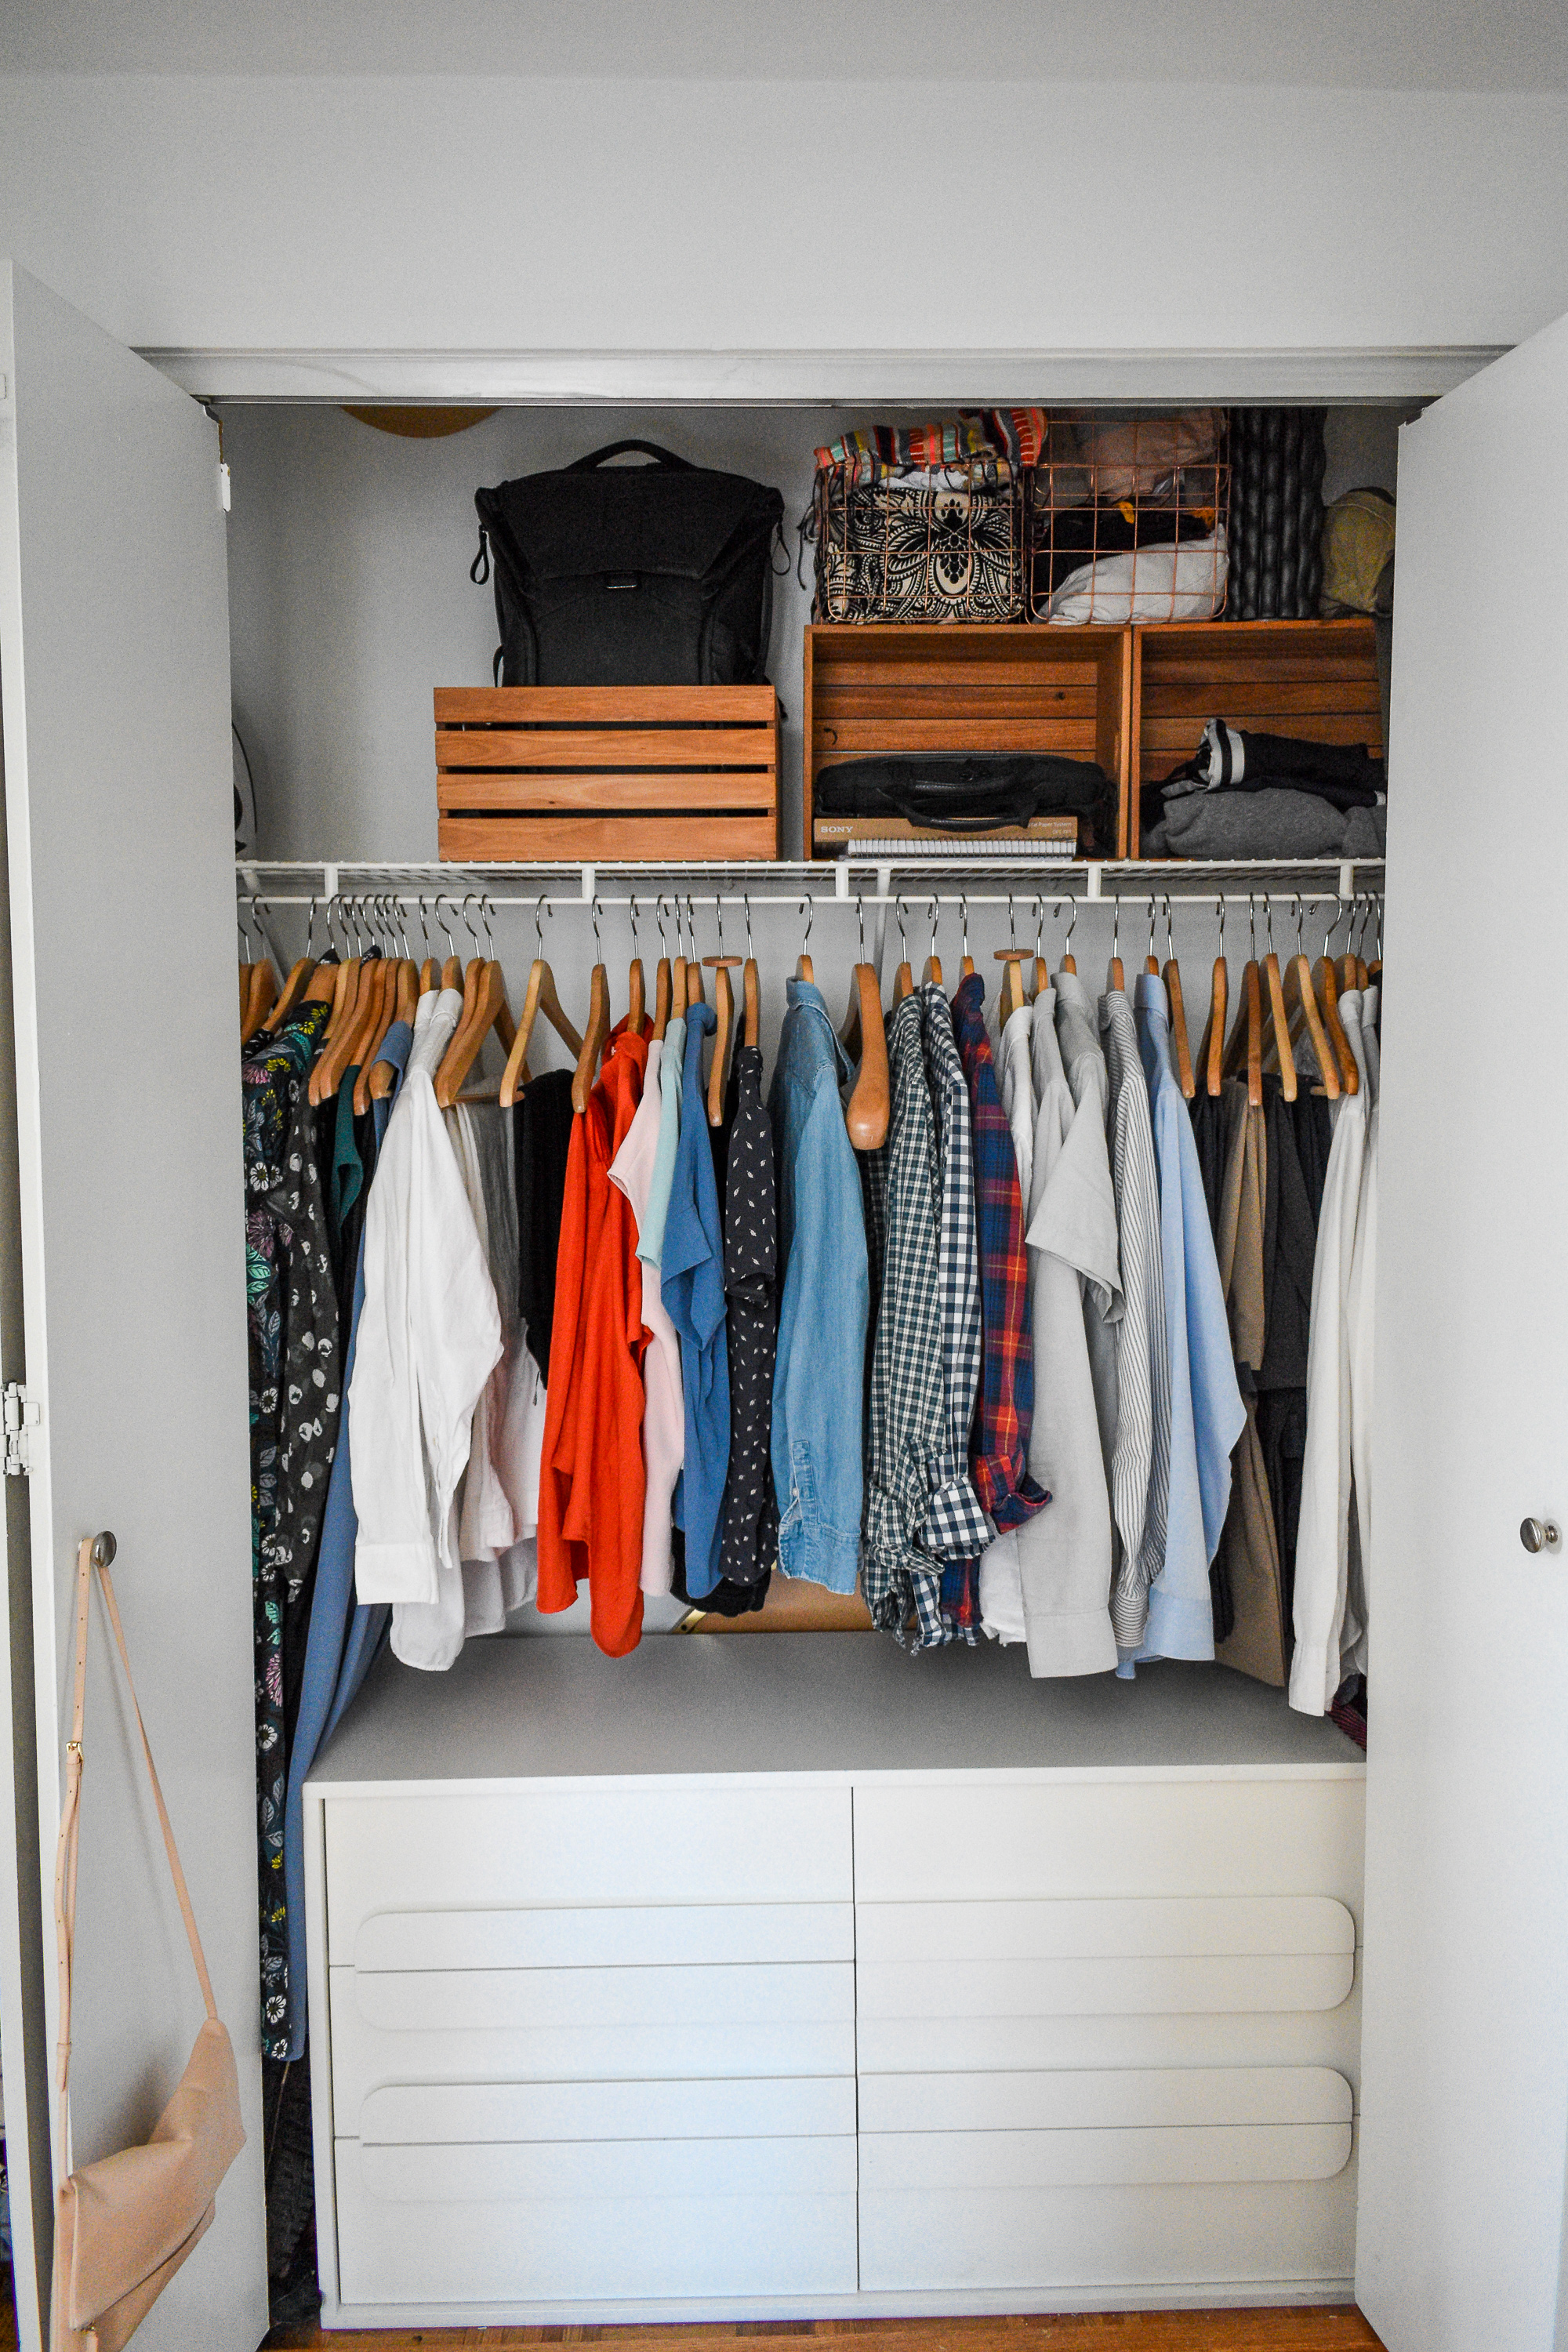 Two wardrobes, one closet